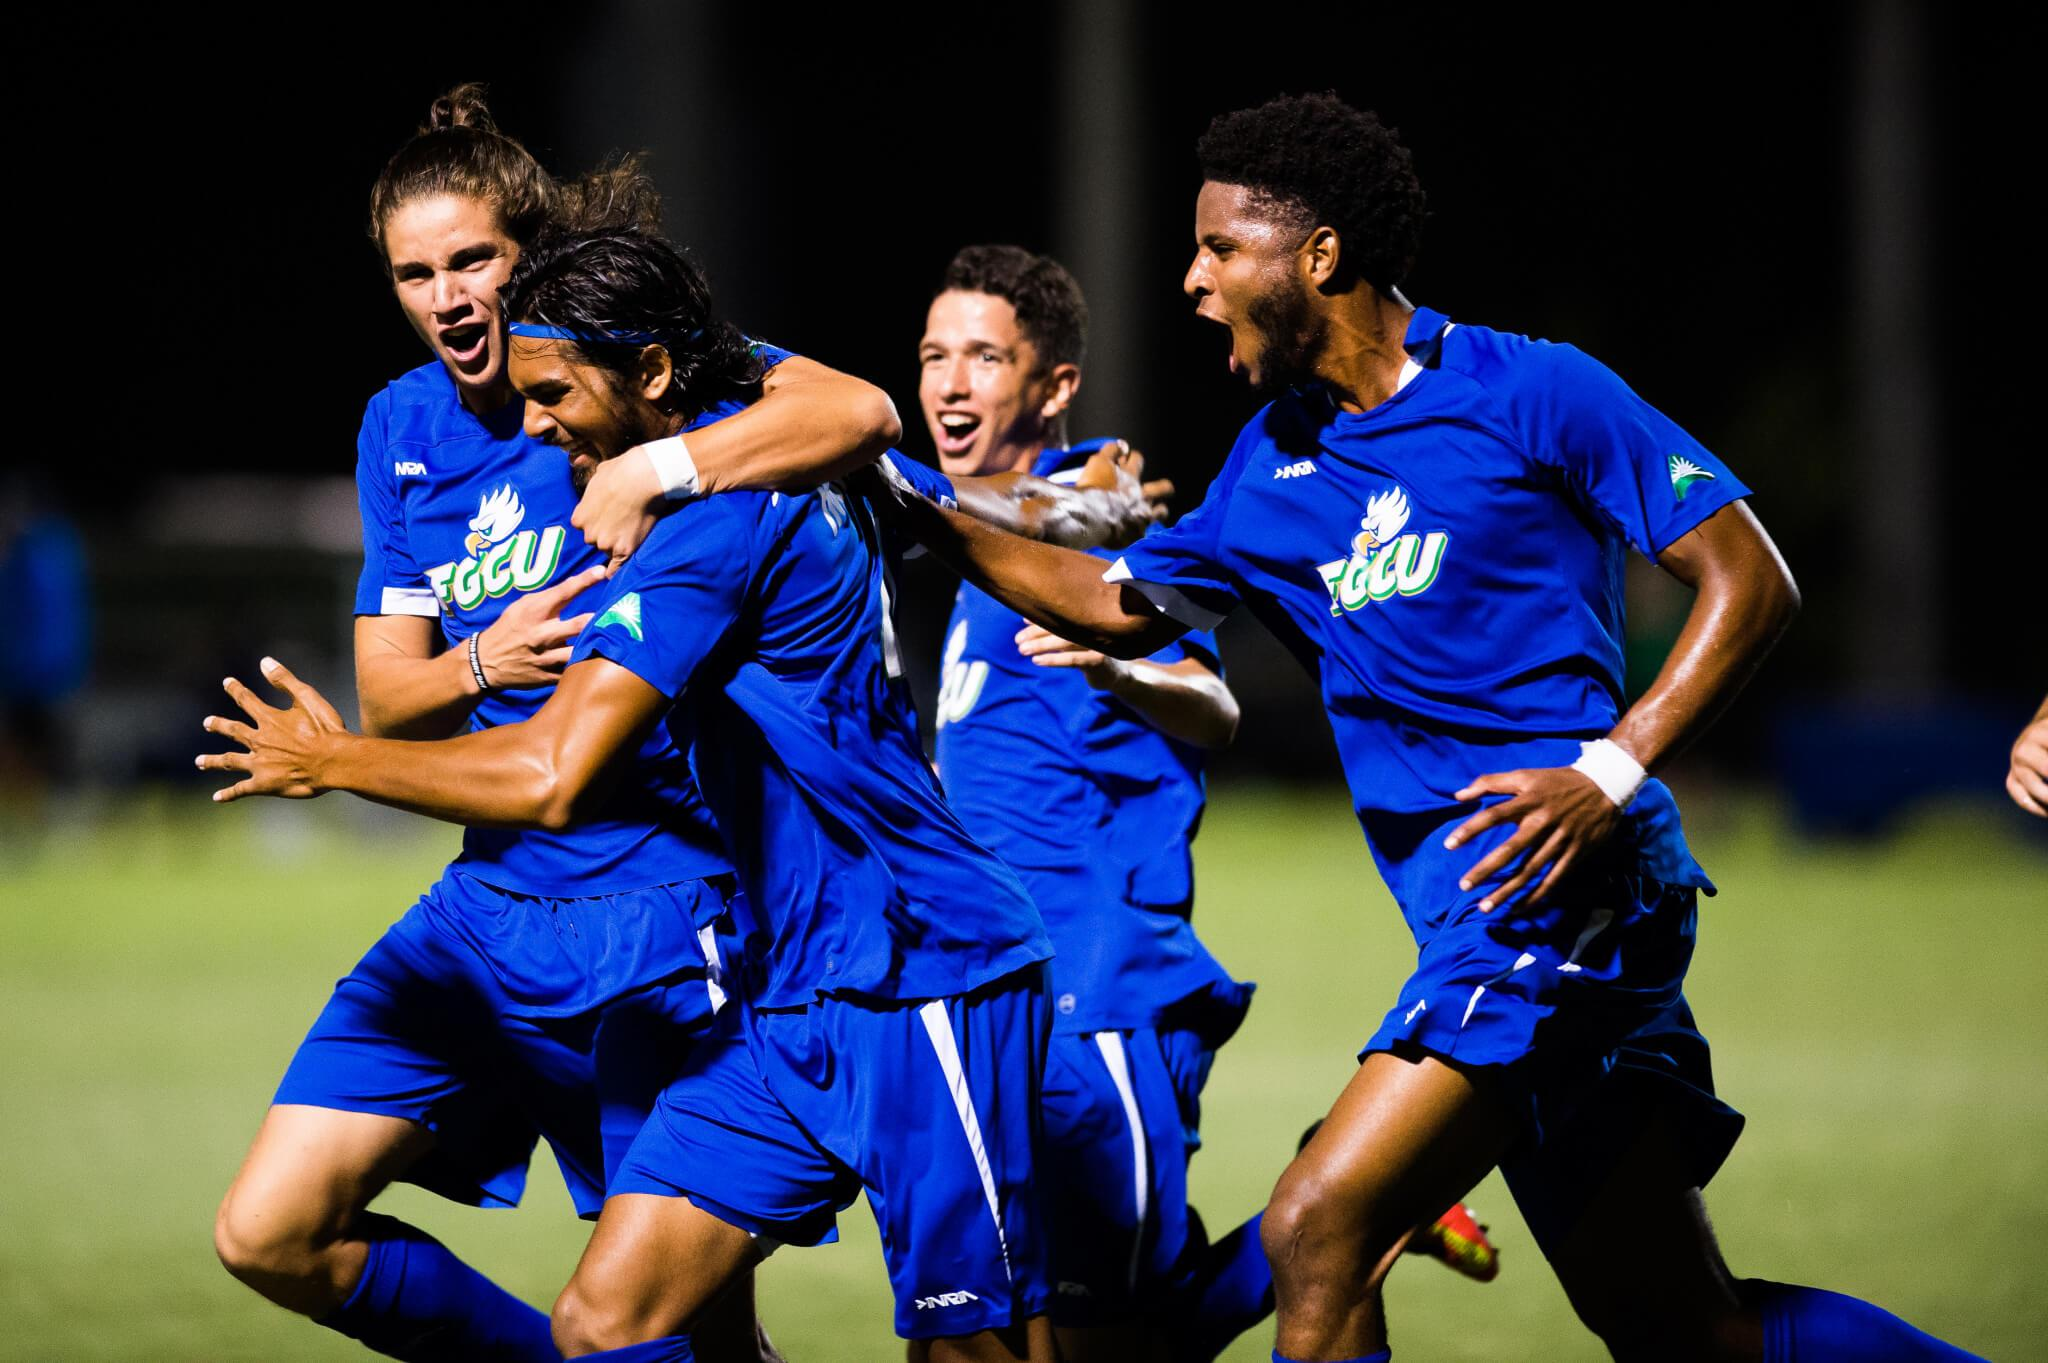 FGCU men's soccer defeats in-state rival USF